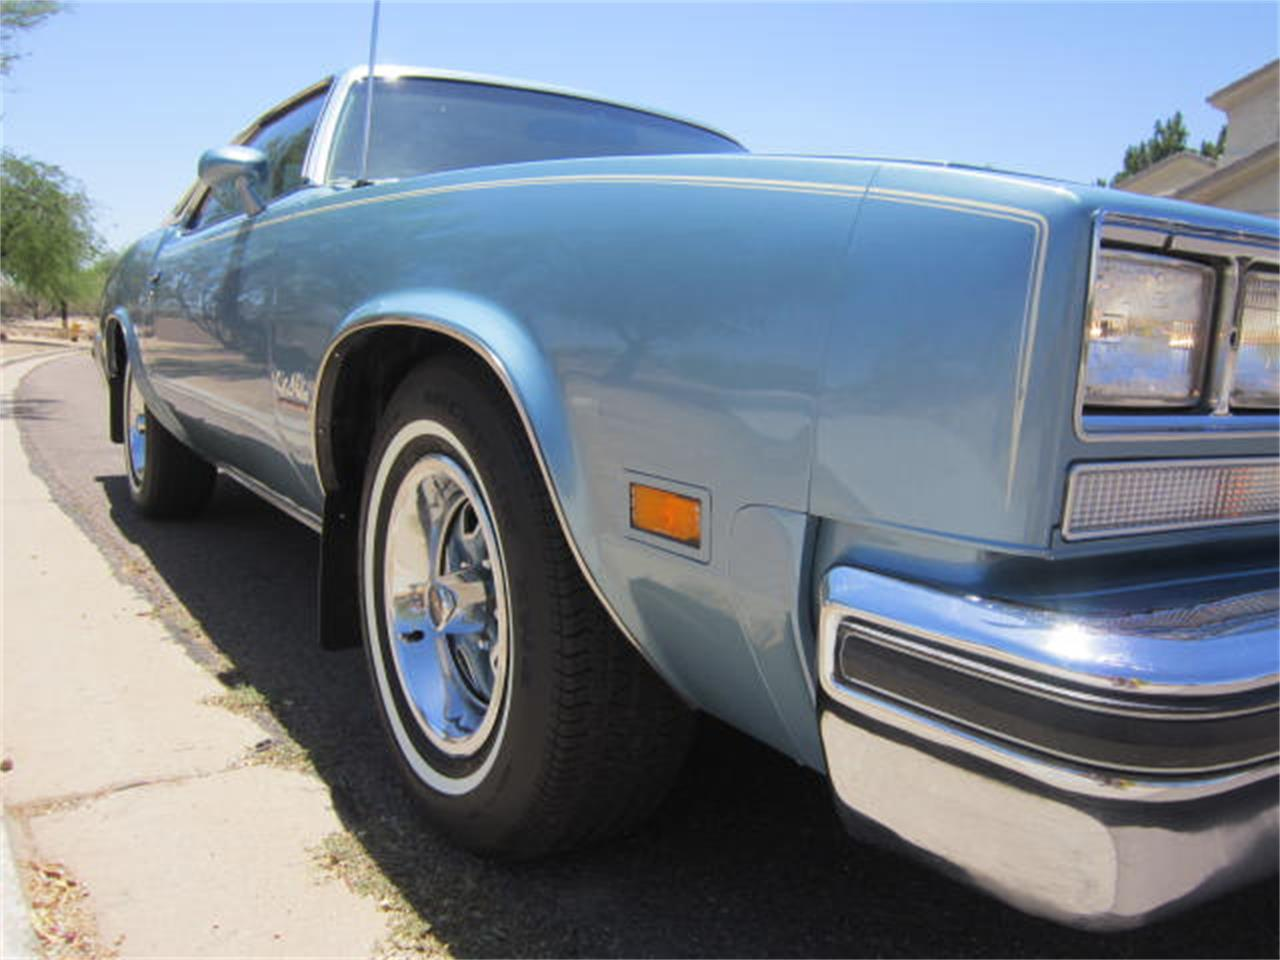 Large Picture of '77 Cutlass located in Arizona - $15,000.00 Offered by a Private Seller - DISY